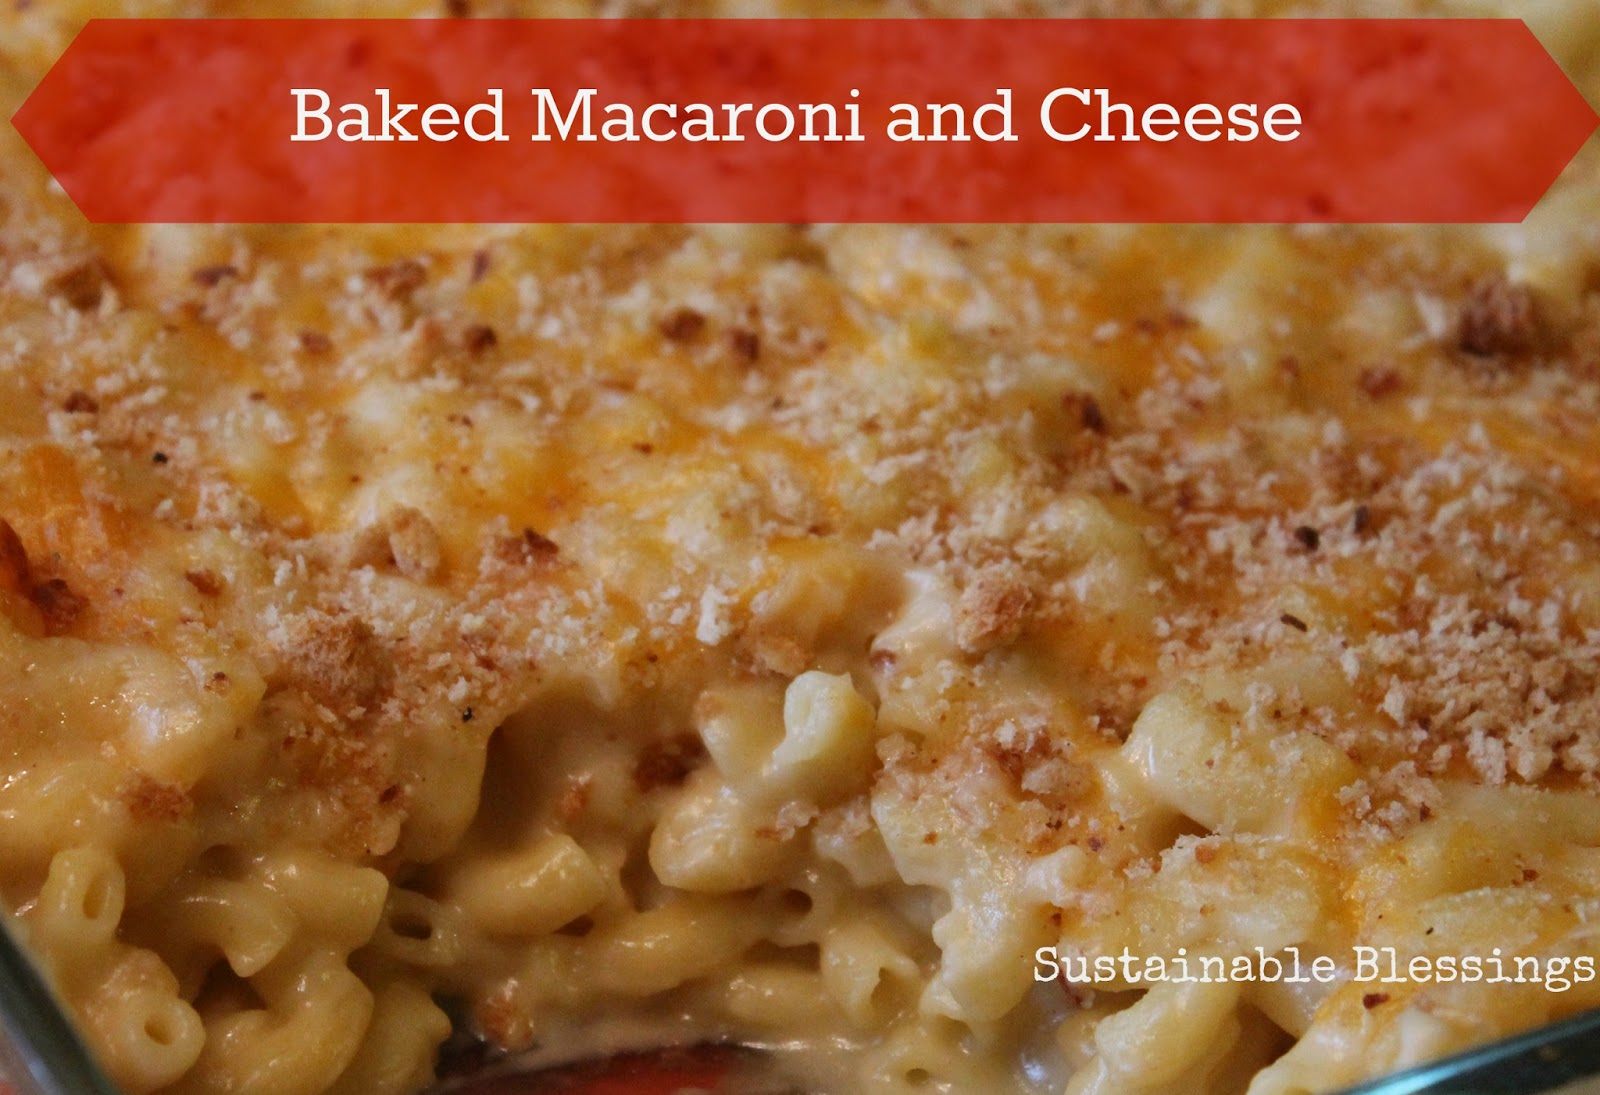 Sustainable Blessings: Baked Macaroni and Cheese